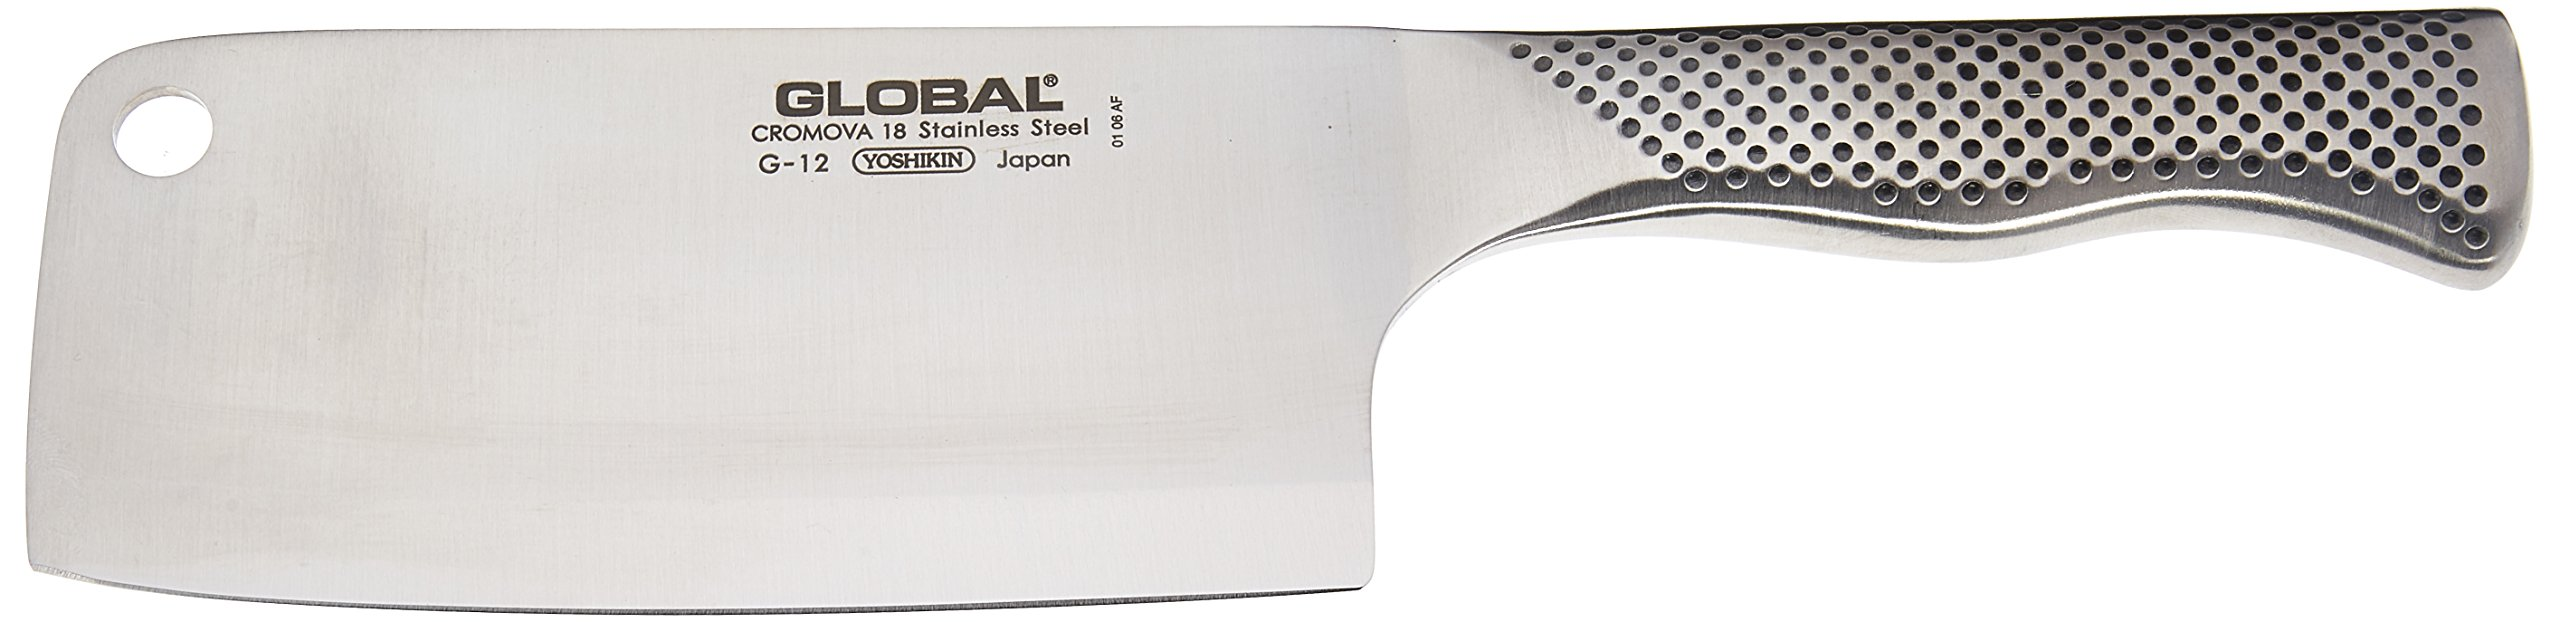 Global 812445 Meat Cleaver, 6 1/2'', 16cm, Silver by Global